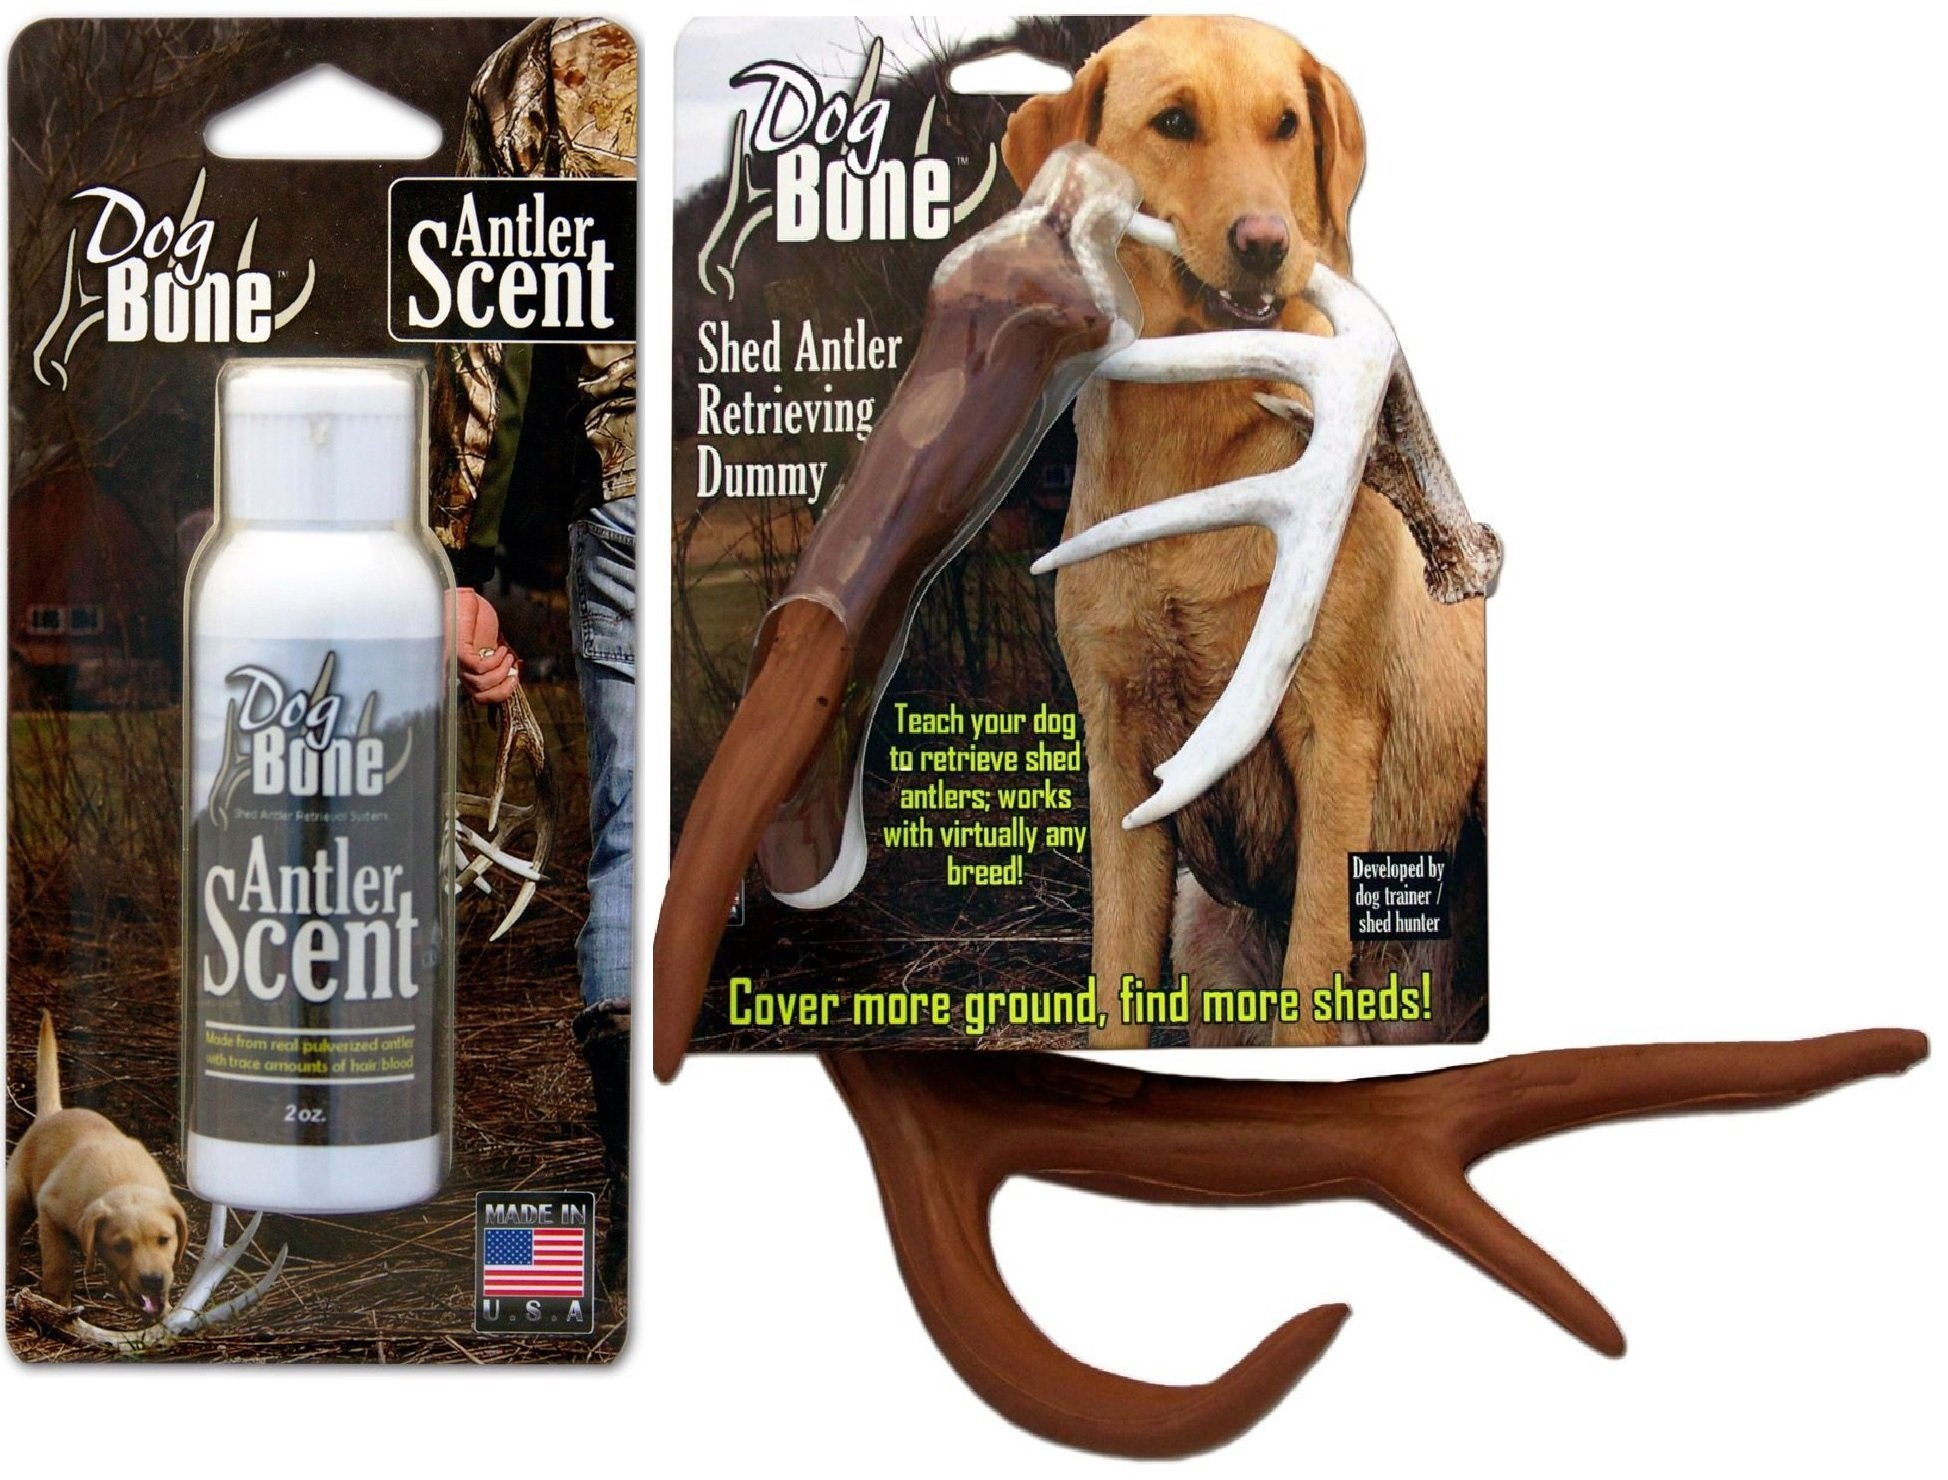 Dog Bone 2oz. Antler Scent for Shed Dog Training by Moore Outdoors DBAS and DogBone Shed Antler Dog Retrieving and Training Dummy (Brown) by Moore Outdoors DBAD